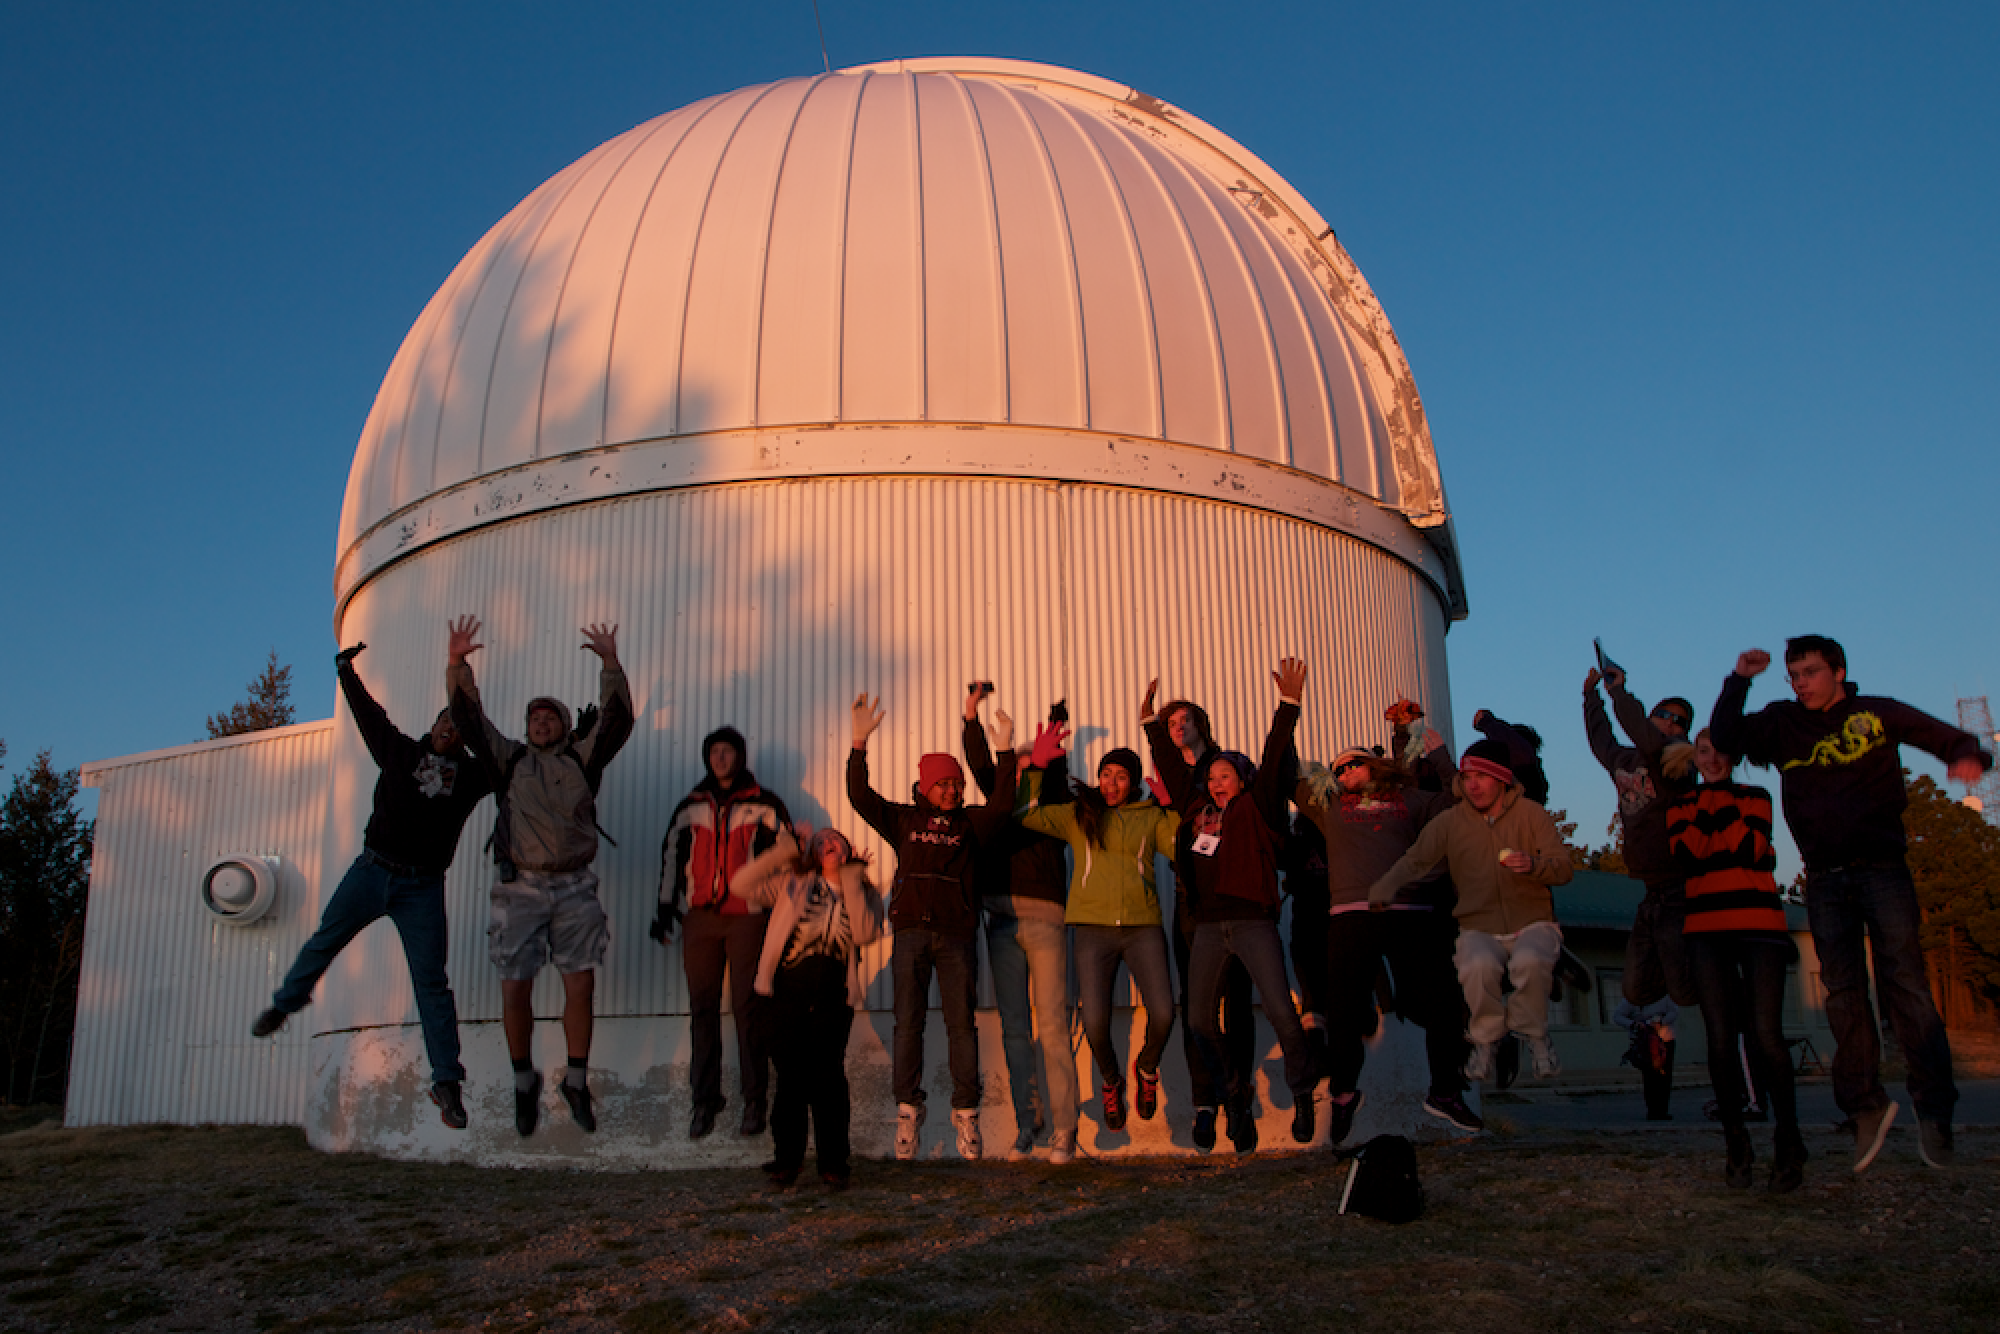 Students from Tucson schools bid farewell to the sun in front of one of the telescope domes at the UA's Mt. Lemmon SkyCenter.